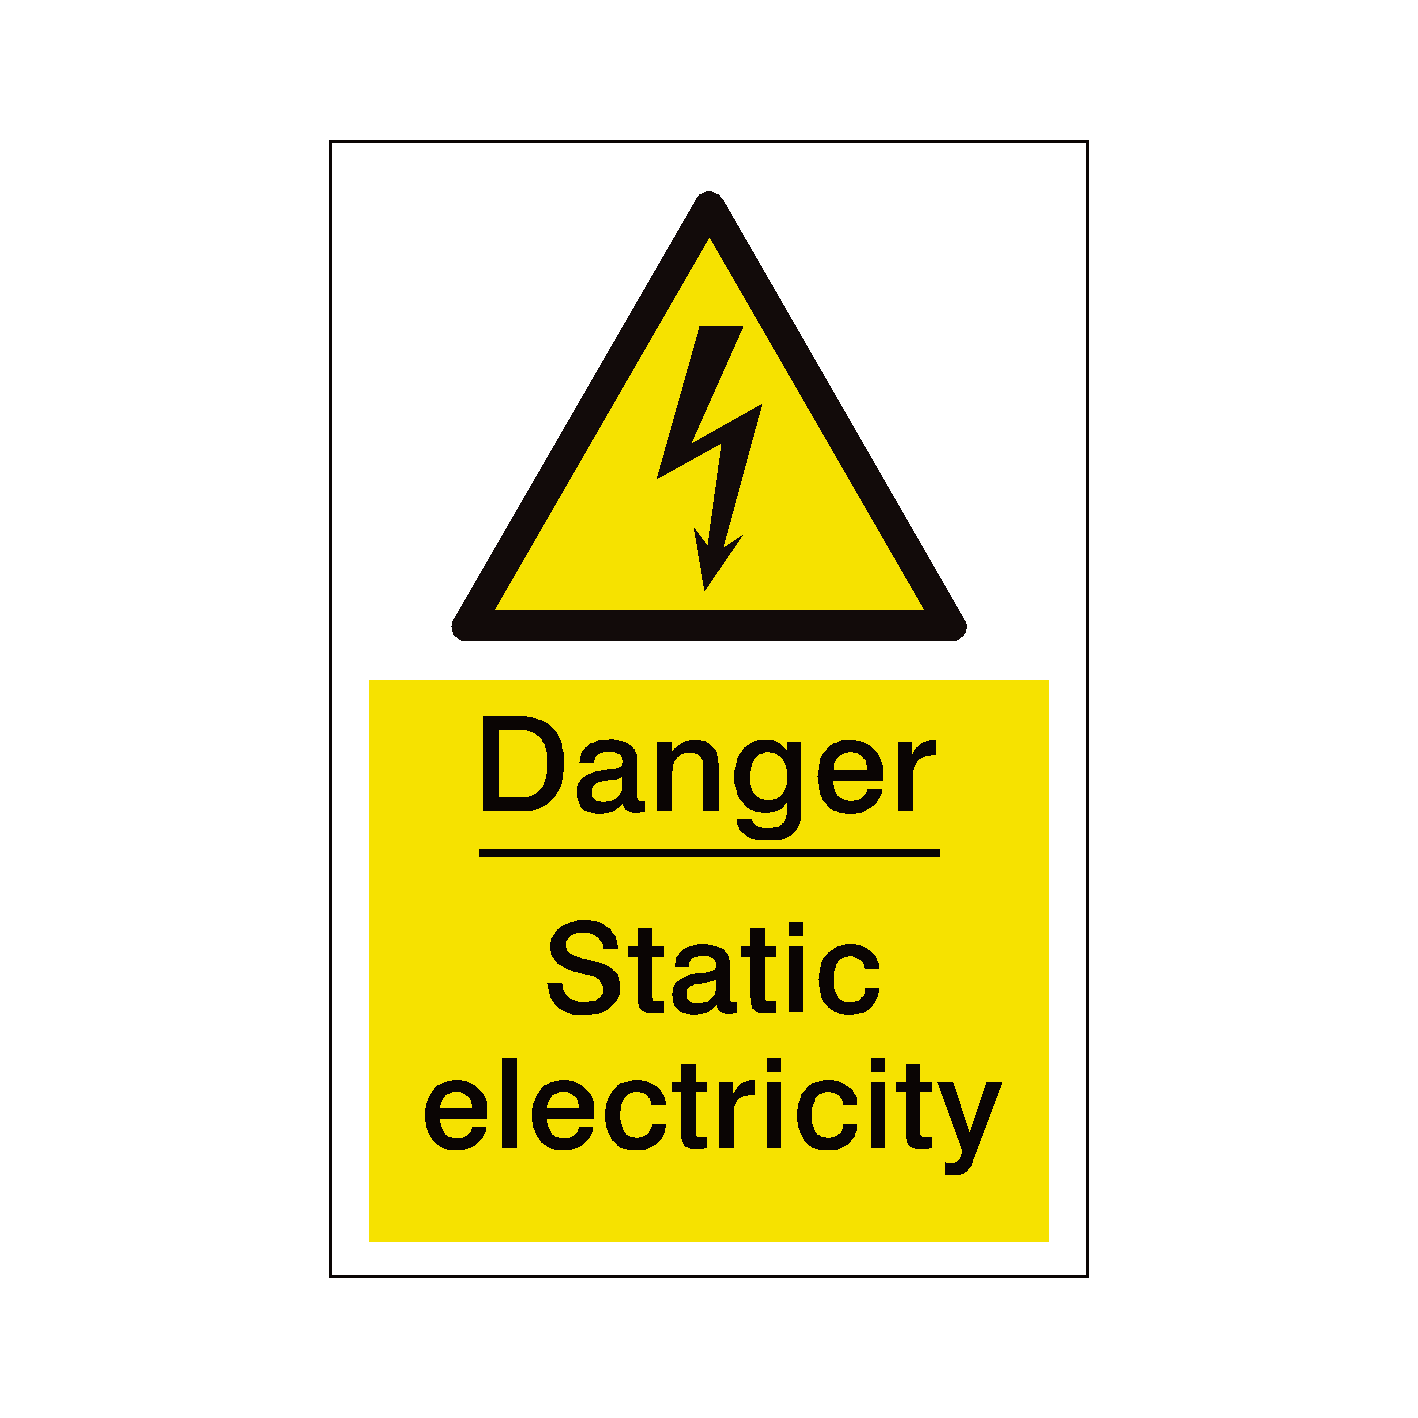 Electrical clipart electricity danger. Perfect sign of component